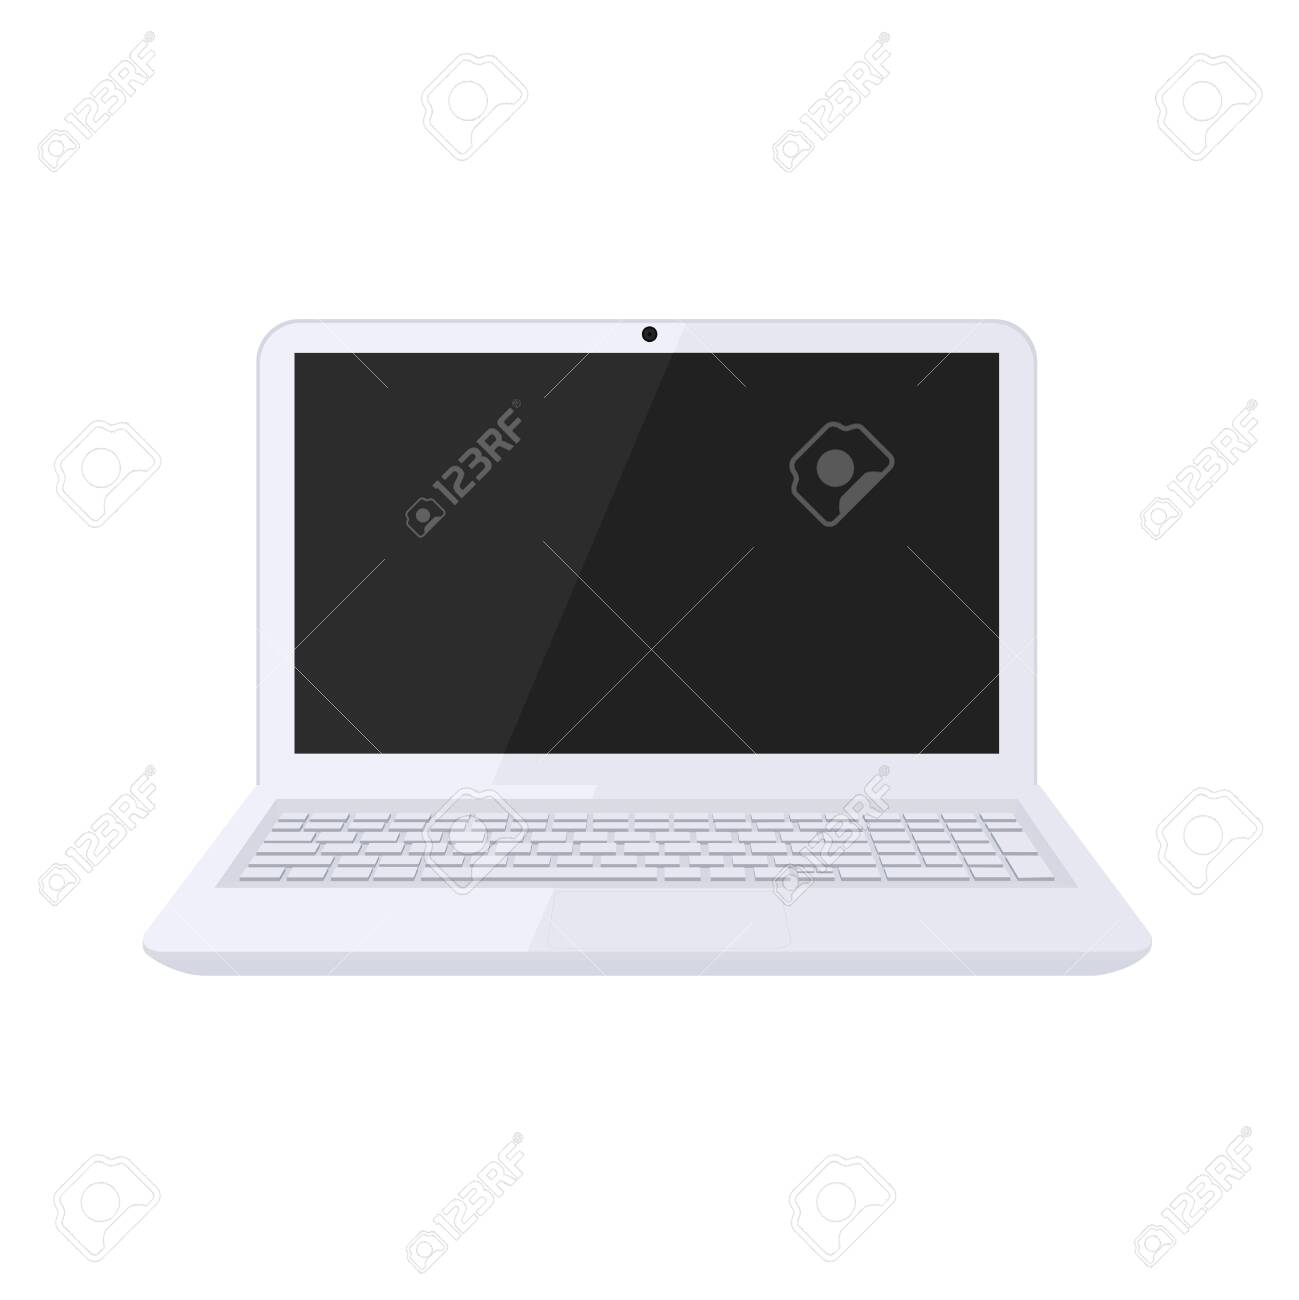 Modern laptop design in black and white color - 145119825